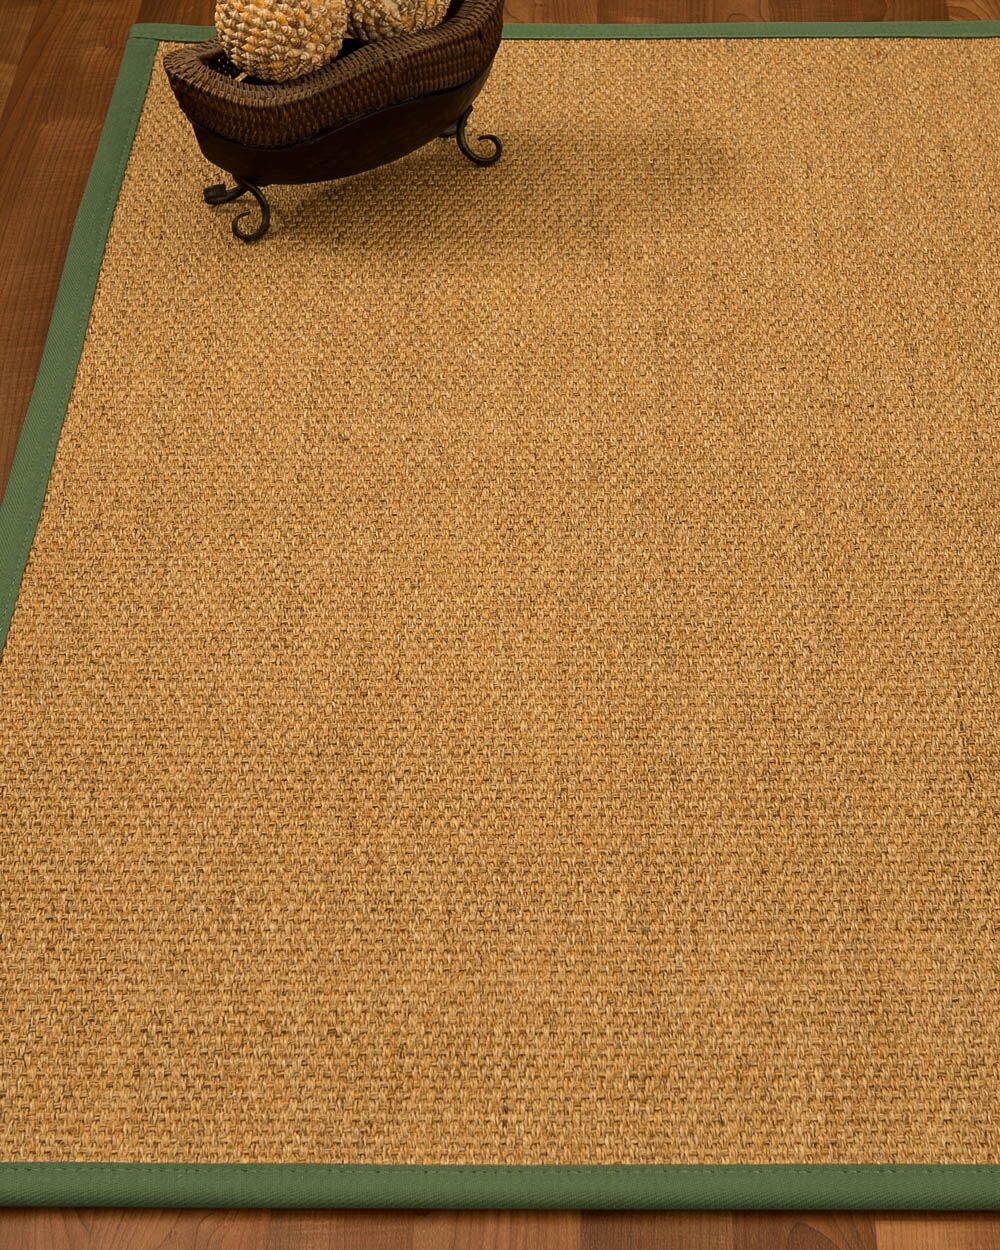 Healey Hand Woven Brown Area Rug Rug Size: Runner 2'6